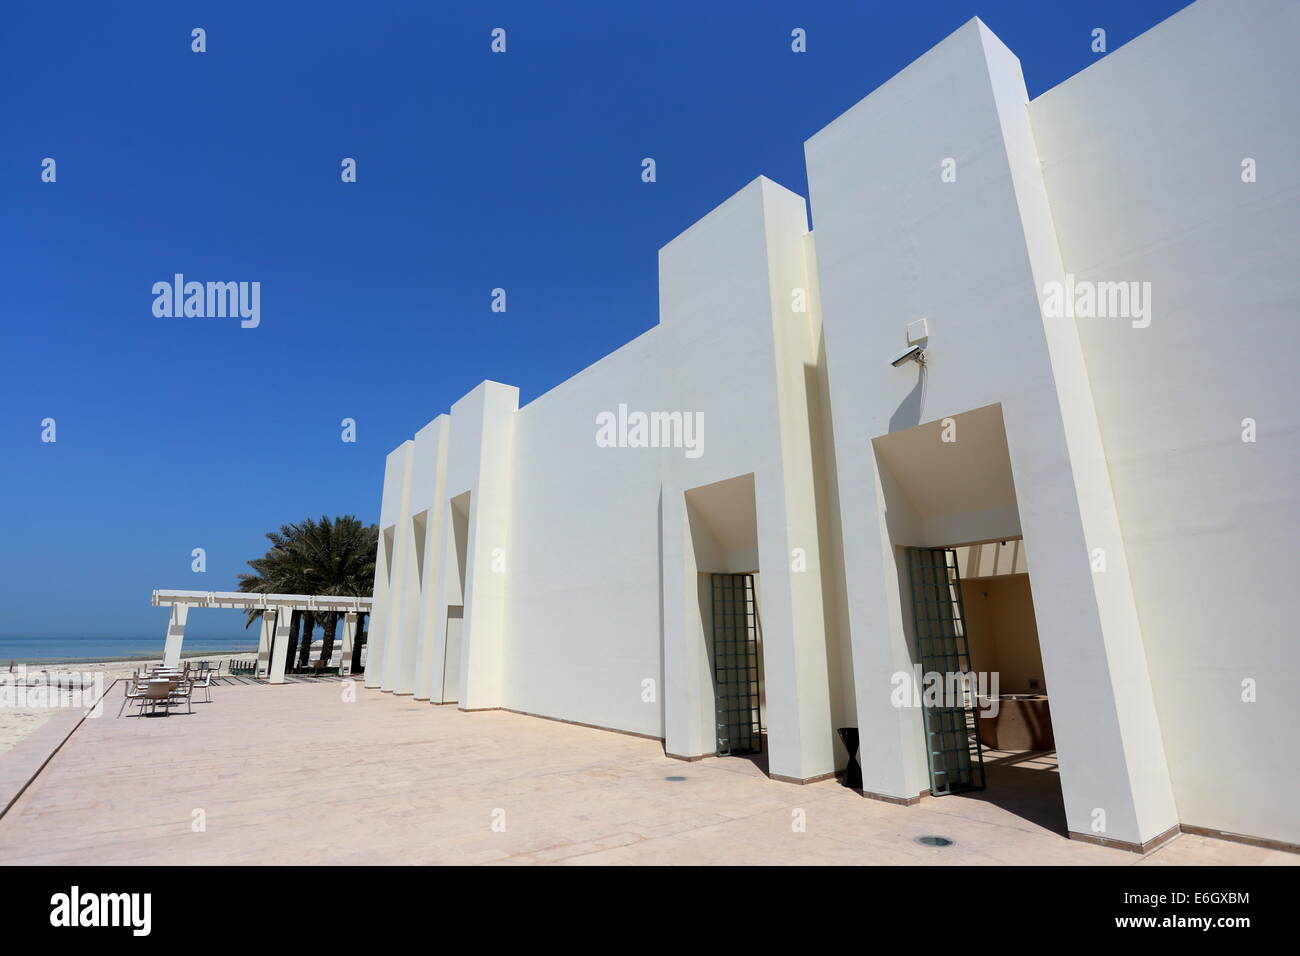 Rear entrance to the Bahrain Fort Museum, Al Qalah, Kingdom of Bahrain - Stock Image